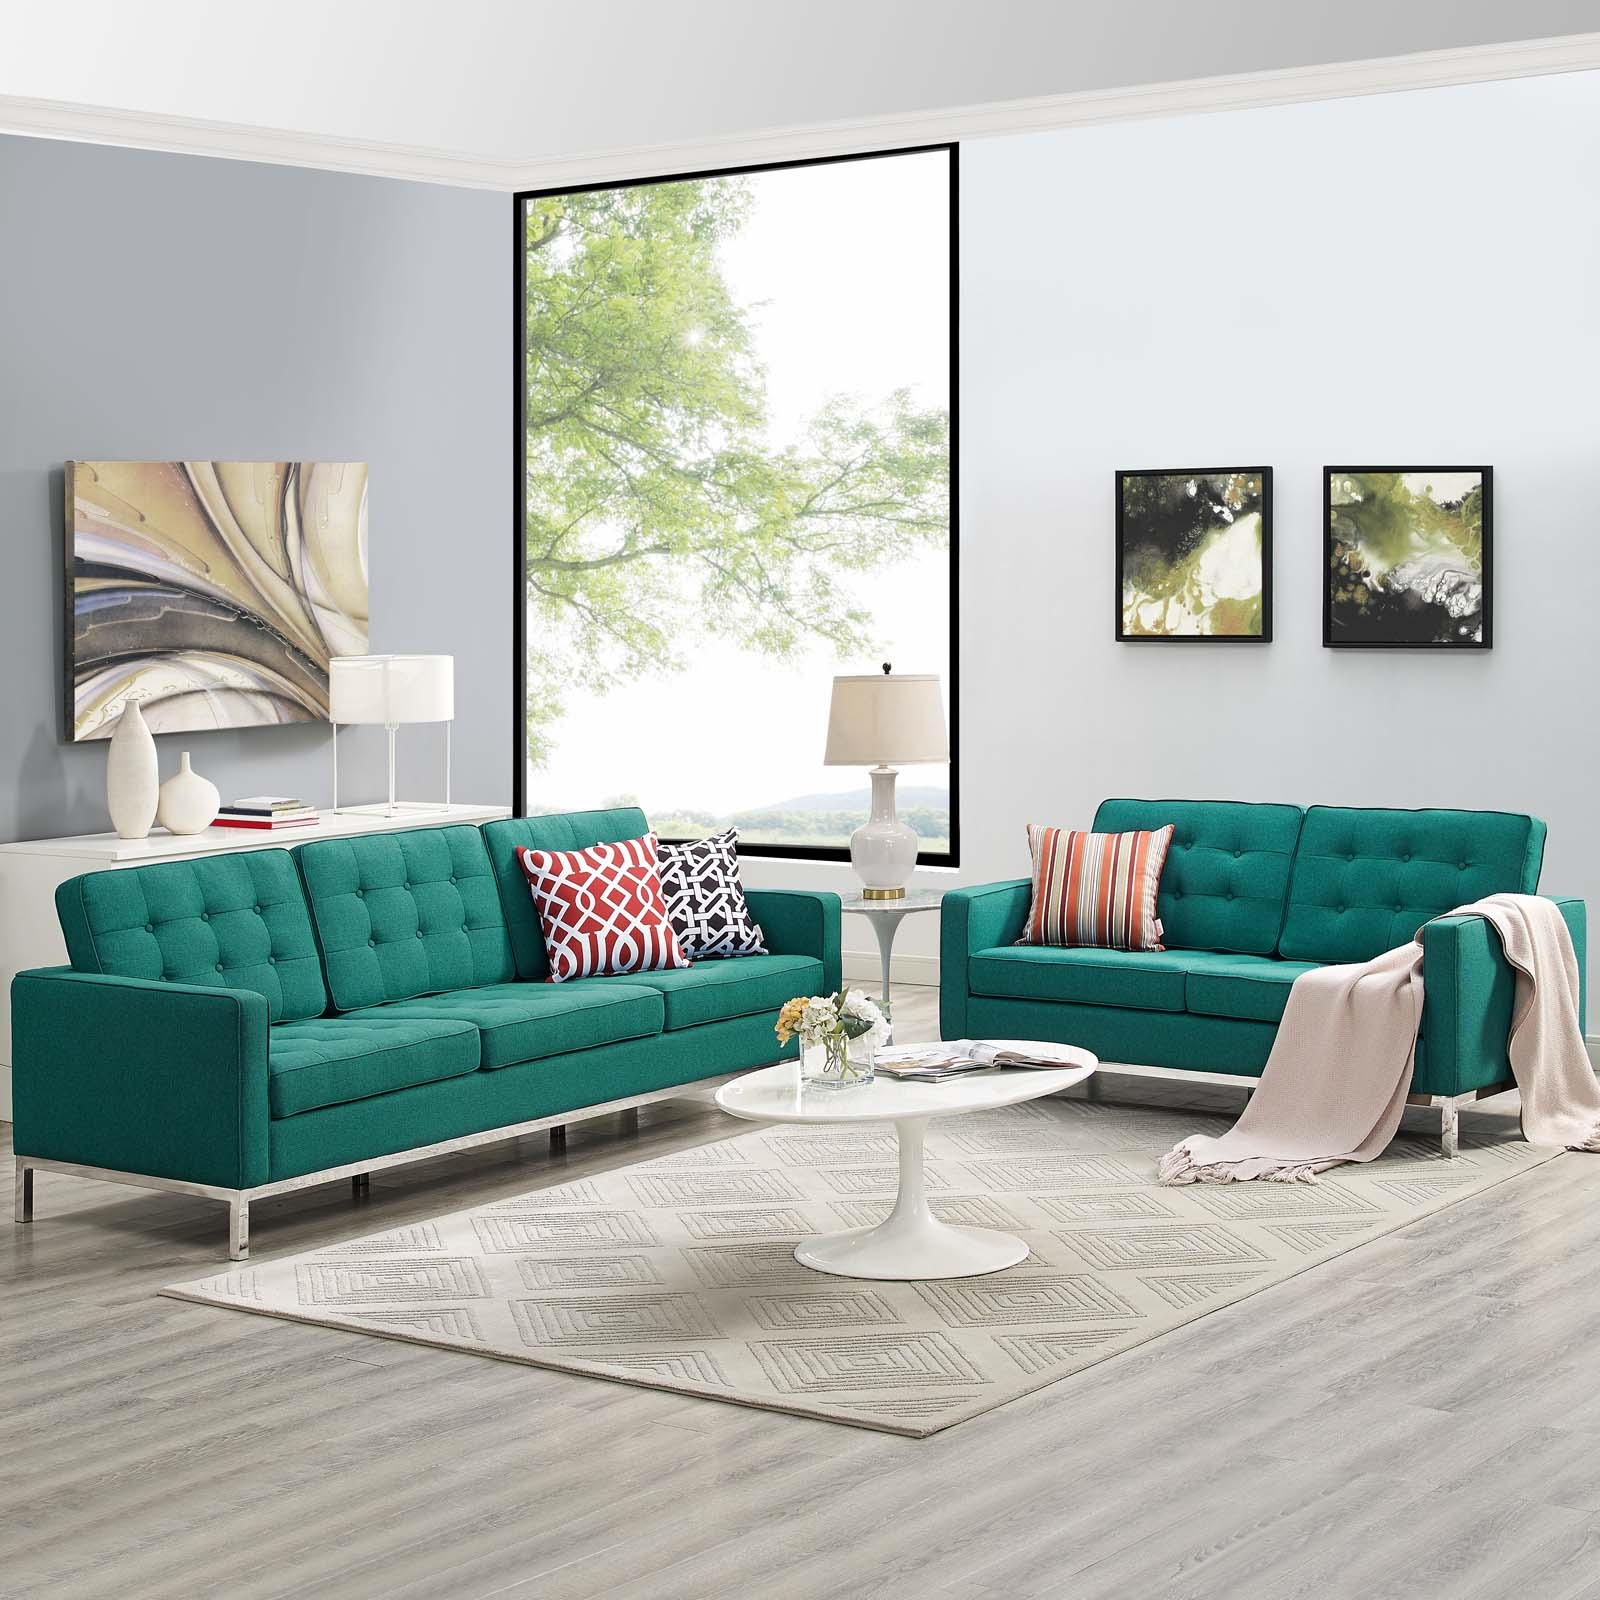 Loft 2 Piece Upholstered Fabric Sofa and Loveseat Set in Teal